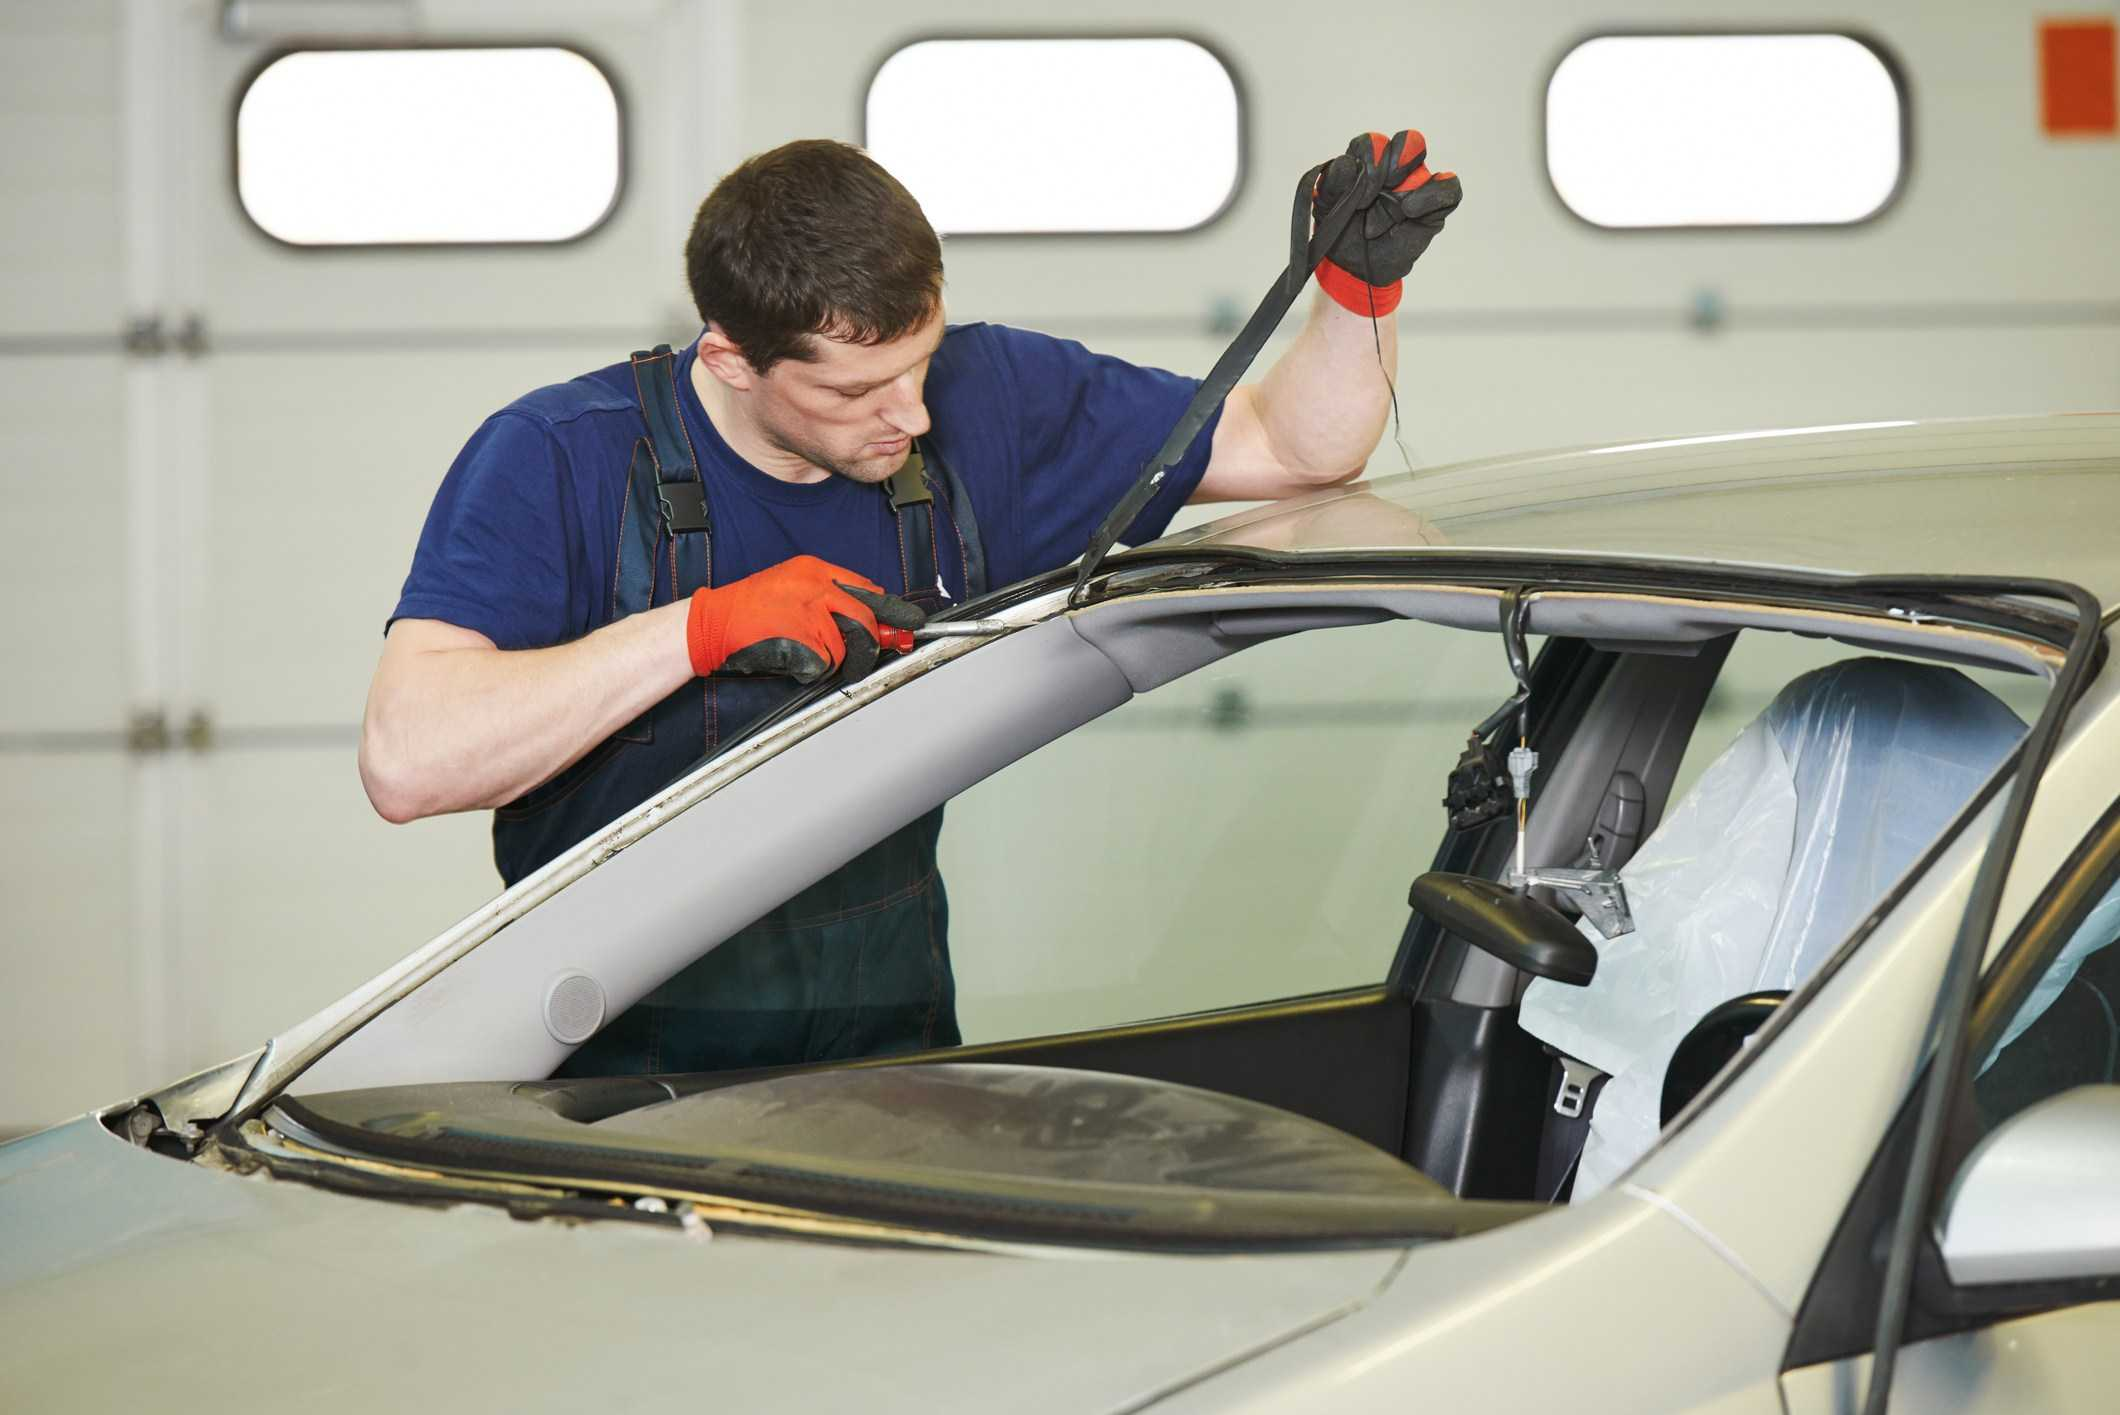 Windshield Replacement And Auto Glass Repair Dc 202 559 2404 Free Estimate For Windshield Repair